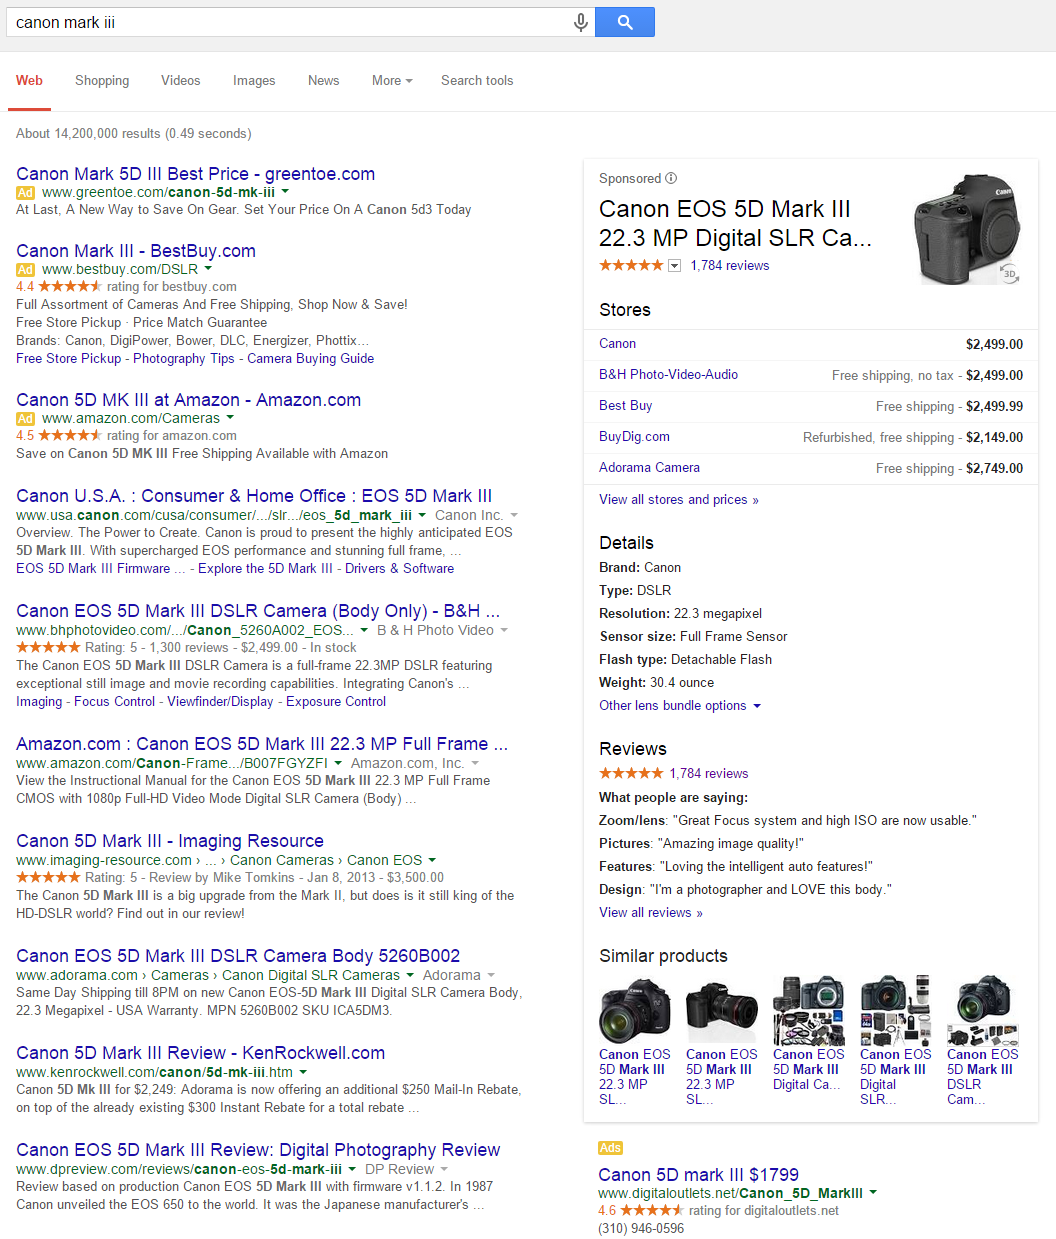 google-shopping-16-1